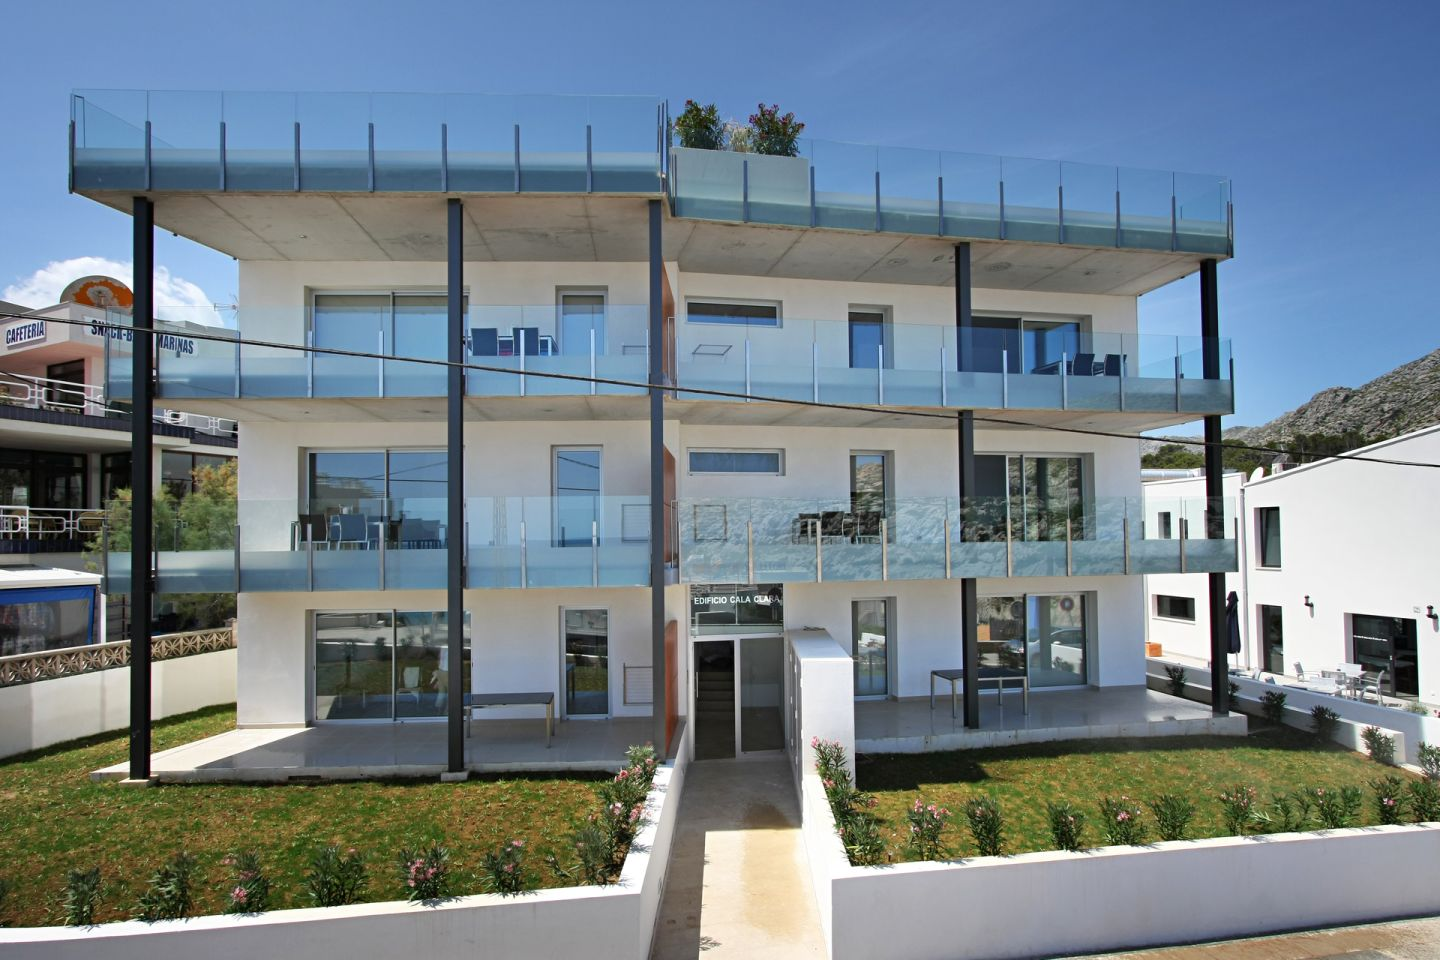 2 Bed Ground Floor for sale in Cala San Vicente 0